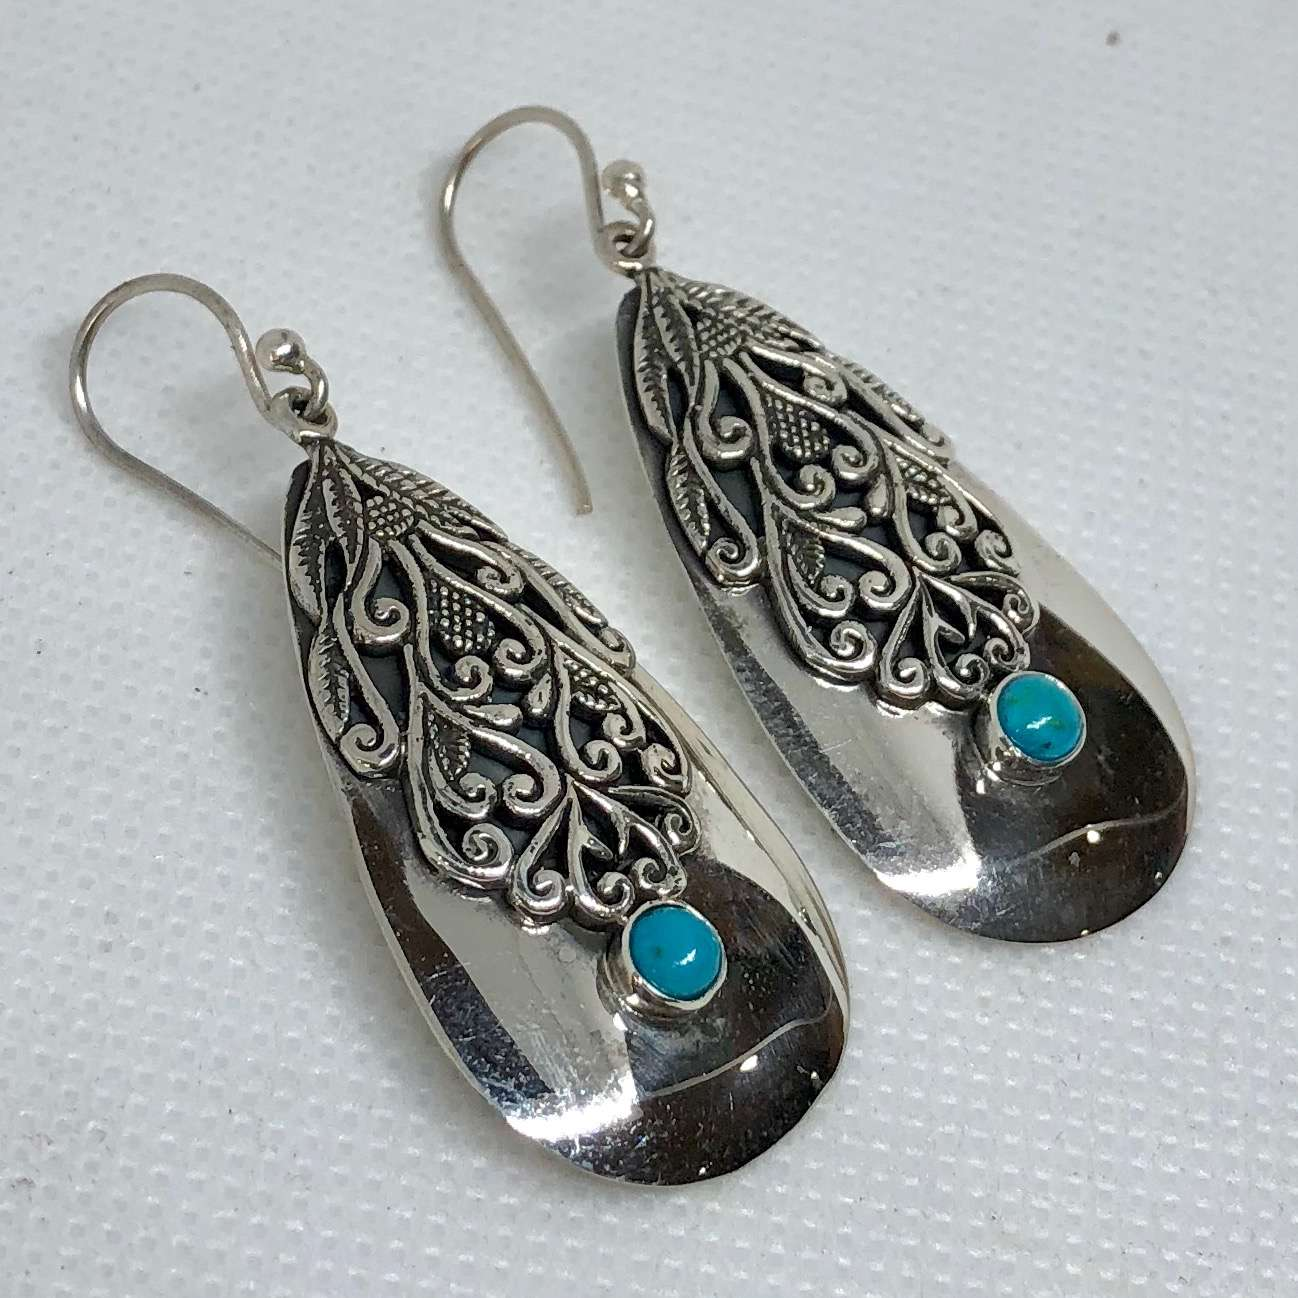 (UNIQUE 925 BALI SILVER FILIGREE EARRINGS WITH TURQUOISE)